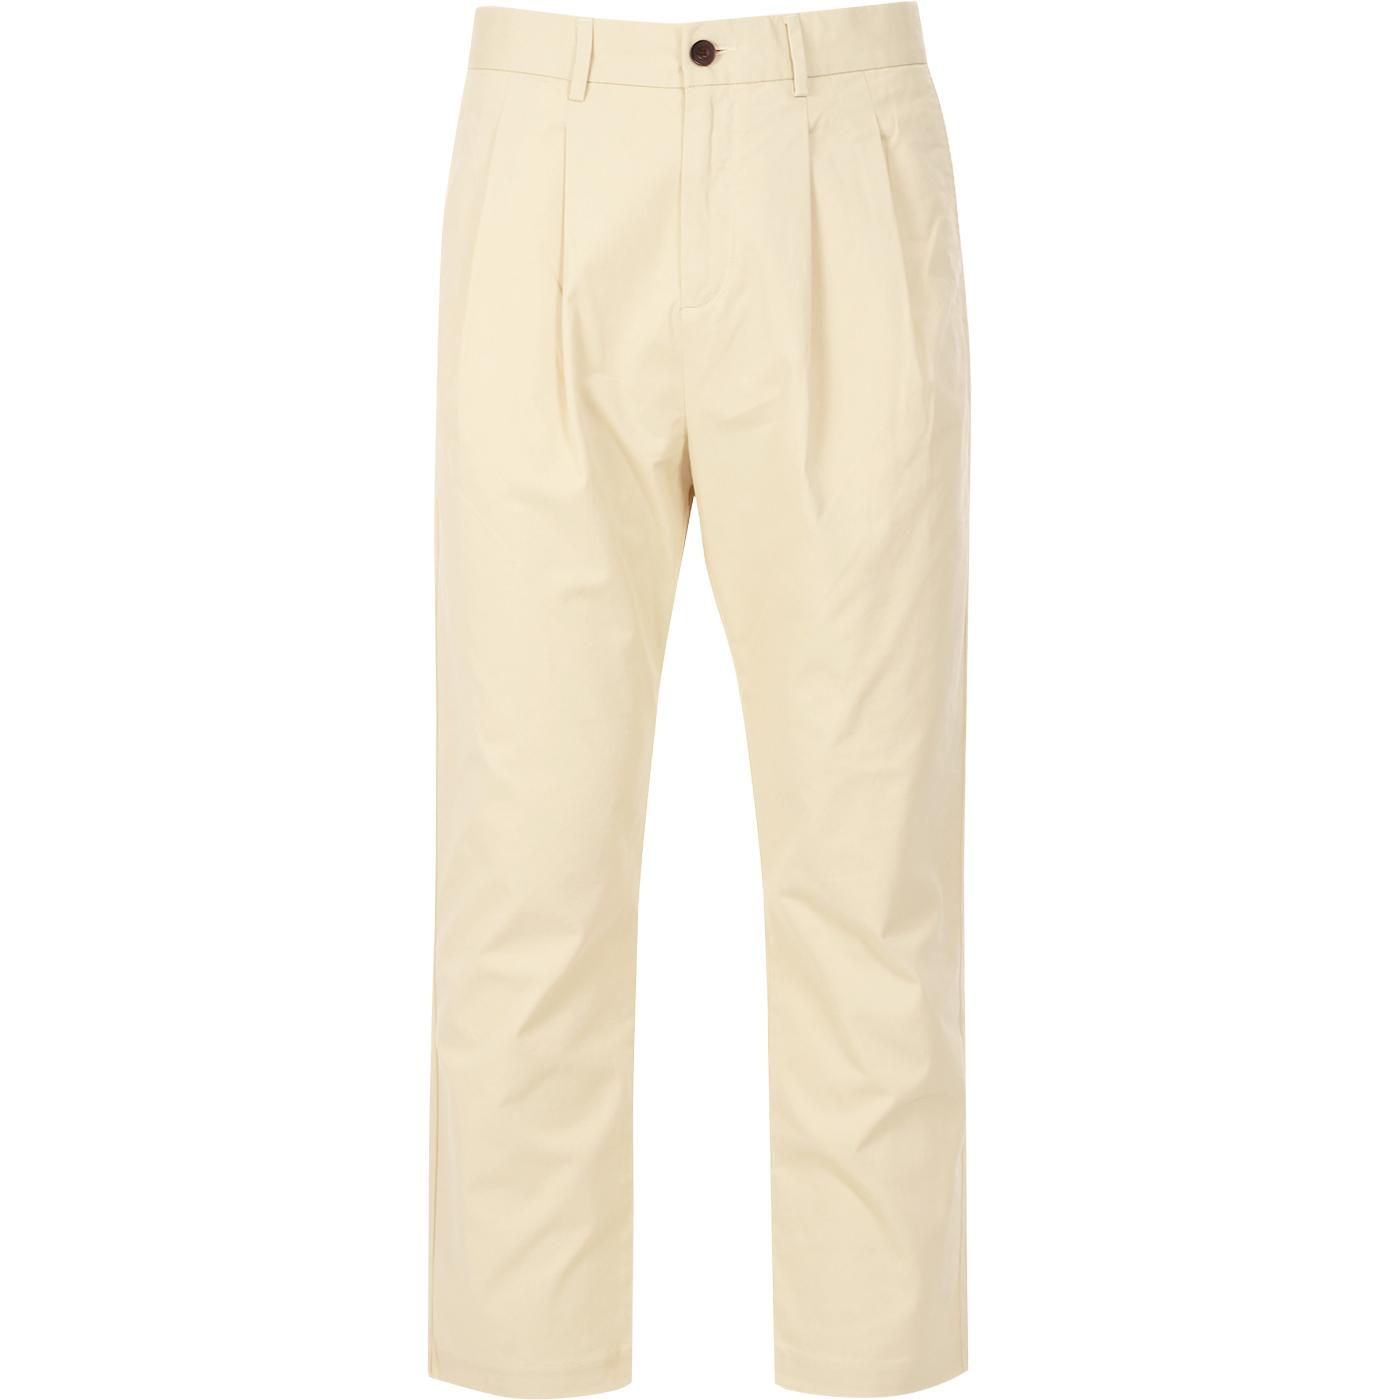 Casey FARAH 100 Retro Archive Chino Trousers (FY)